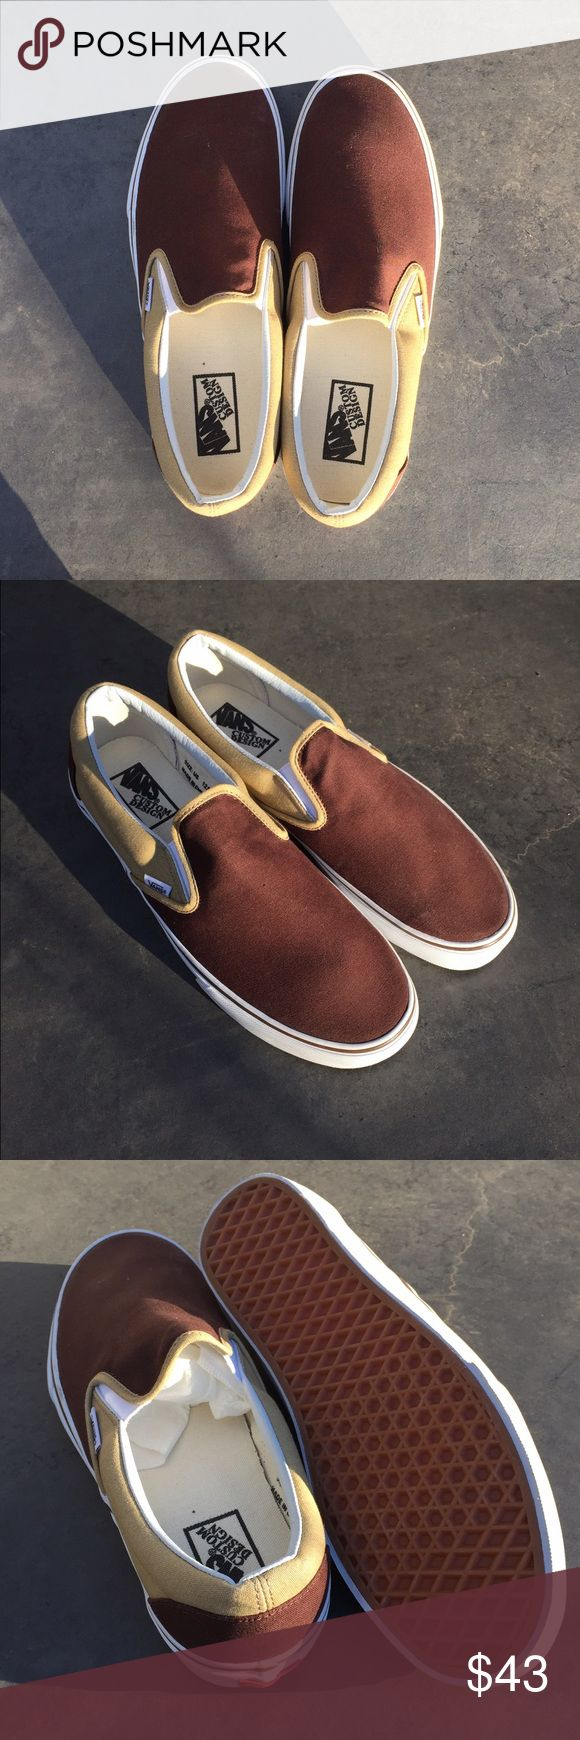 ❣️SALE❣️Men's custom design Vans shoes (size 12) ❣️Valentine's Day sale! One day only❣️Men's custom design Vans slip-on shoes. Size 12. Brown and khaki colored canvas. Like new condition. Vans Shoes Sneakers